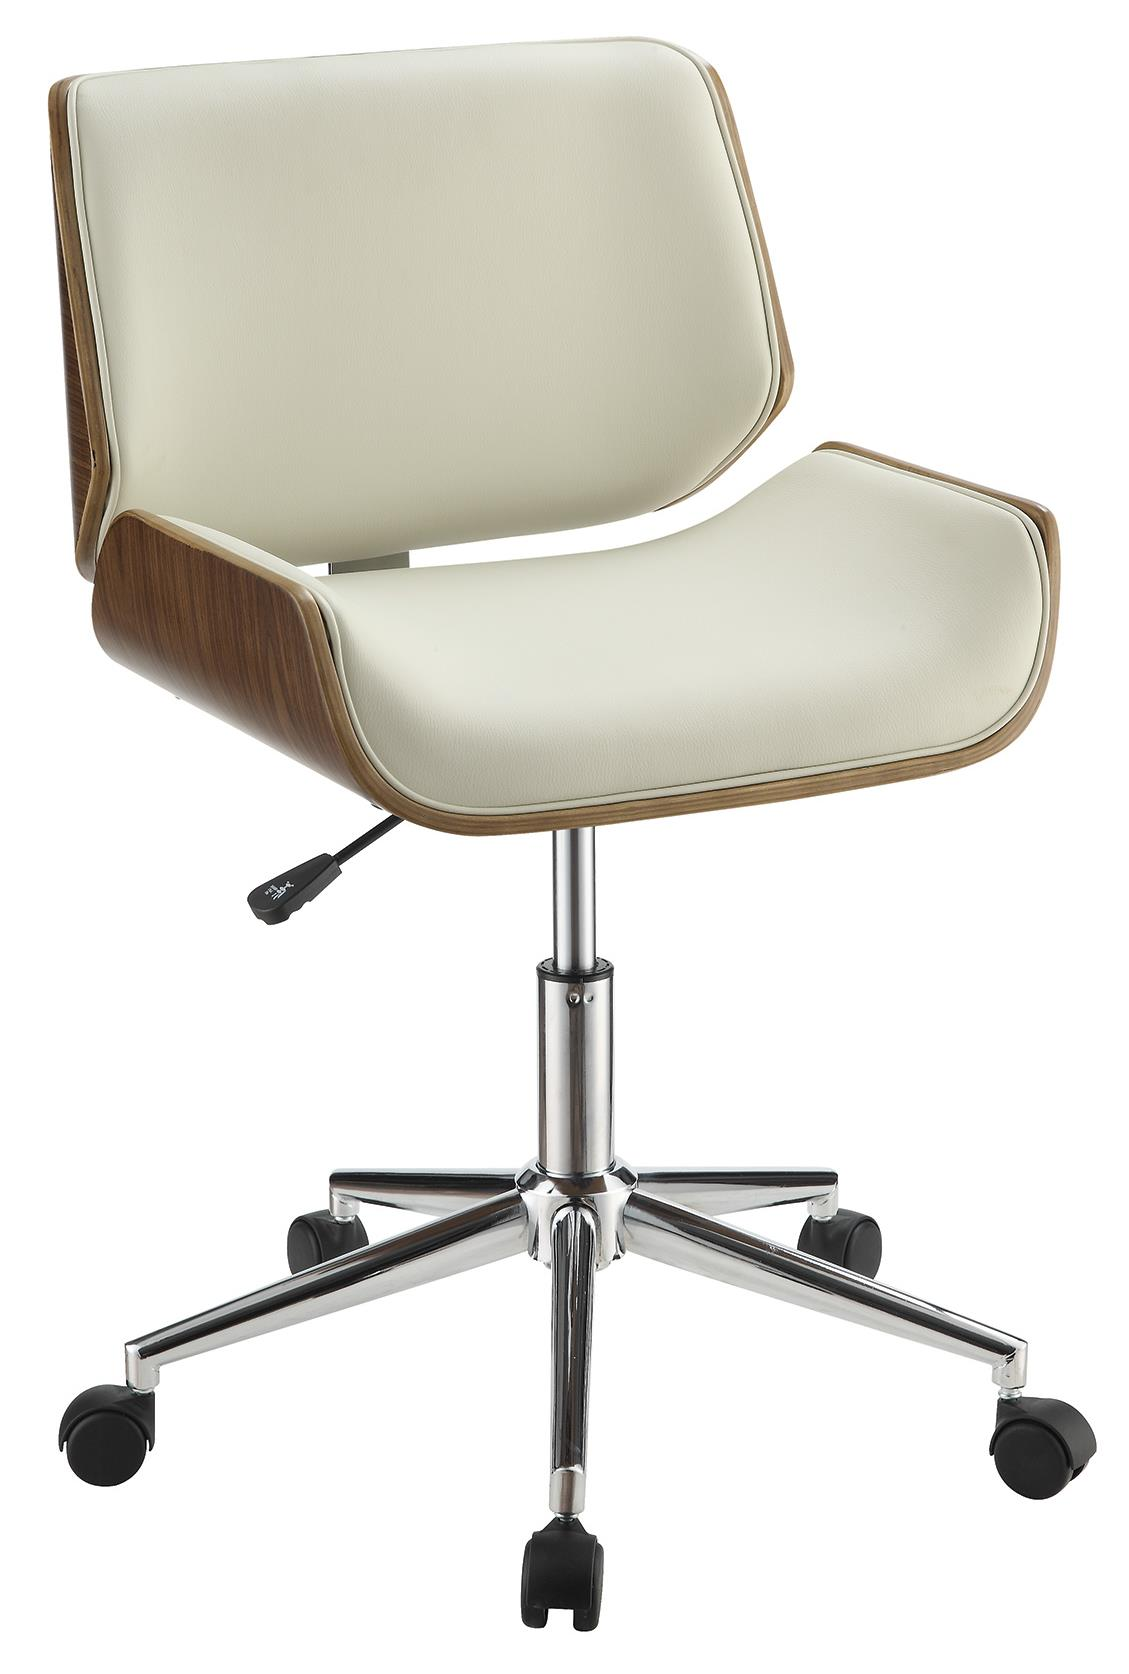 Coaster Office Chairs Office Chair - Item Number: 800613